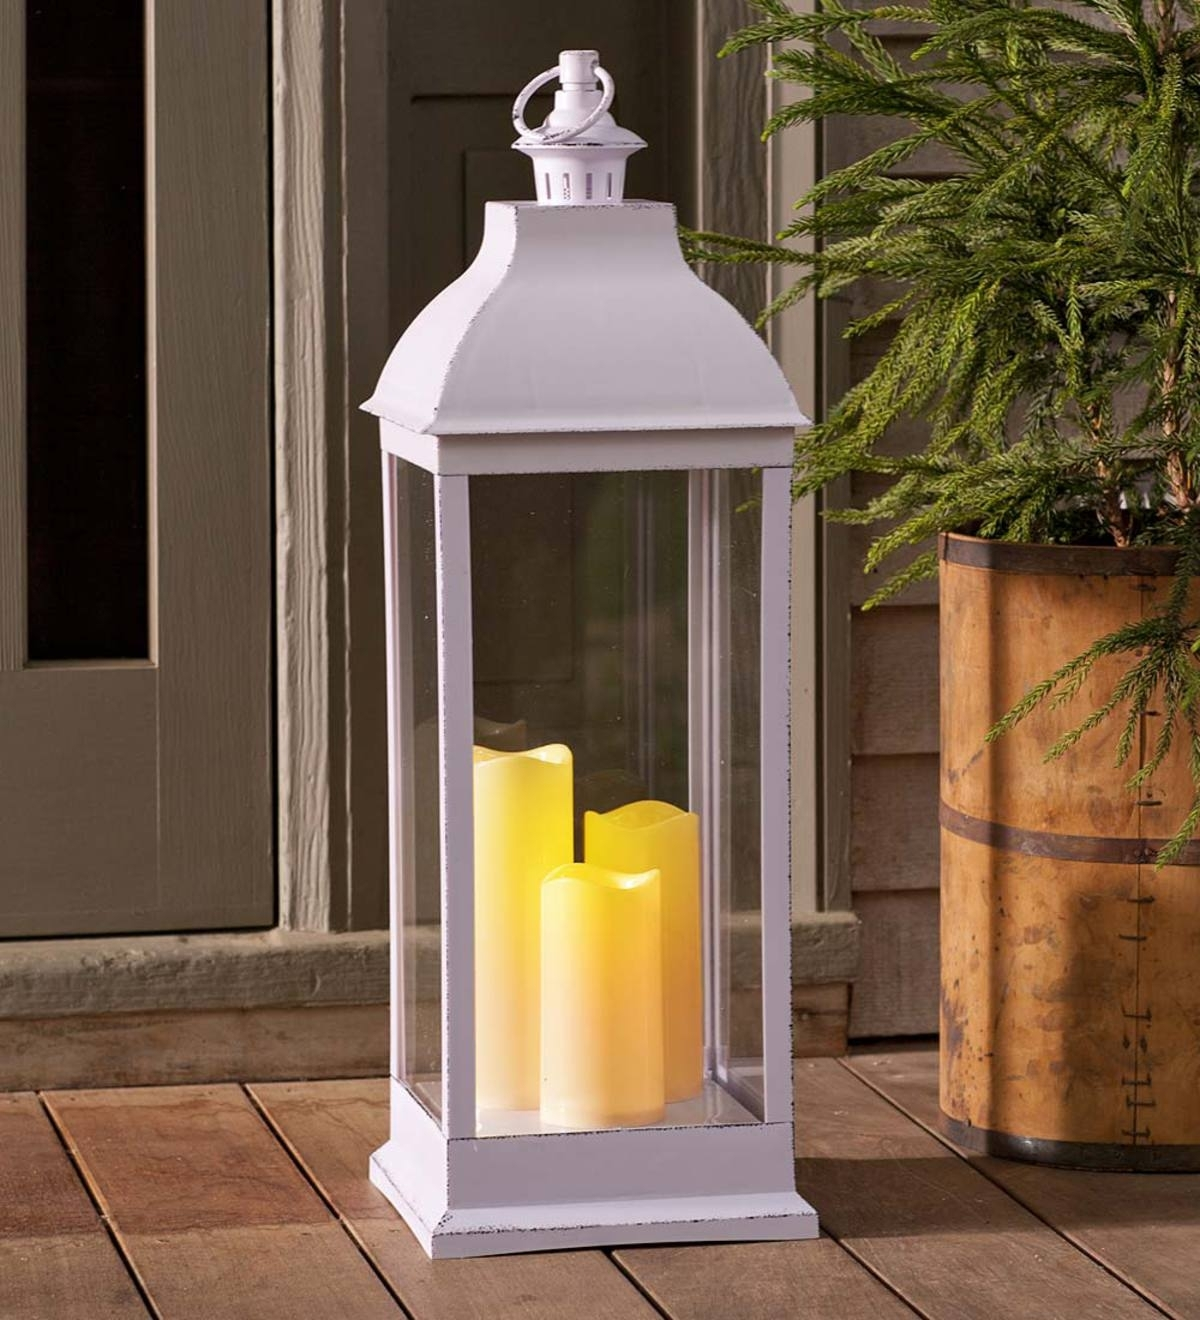 Outdoor Lantern With Led Candles | Plowhearth with Outdoor Lanterns With Led Candles (Image 15 of 20)